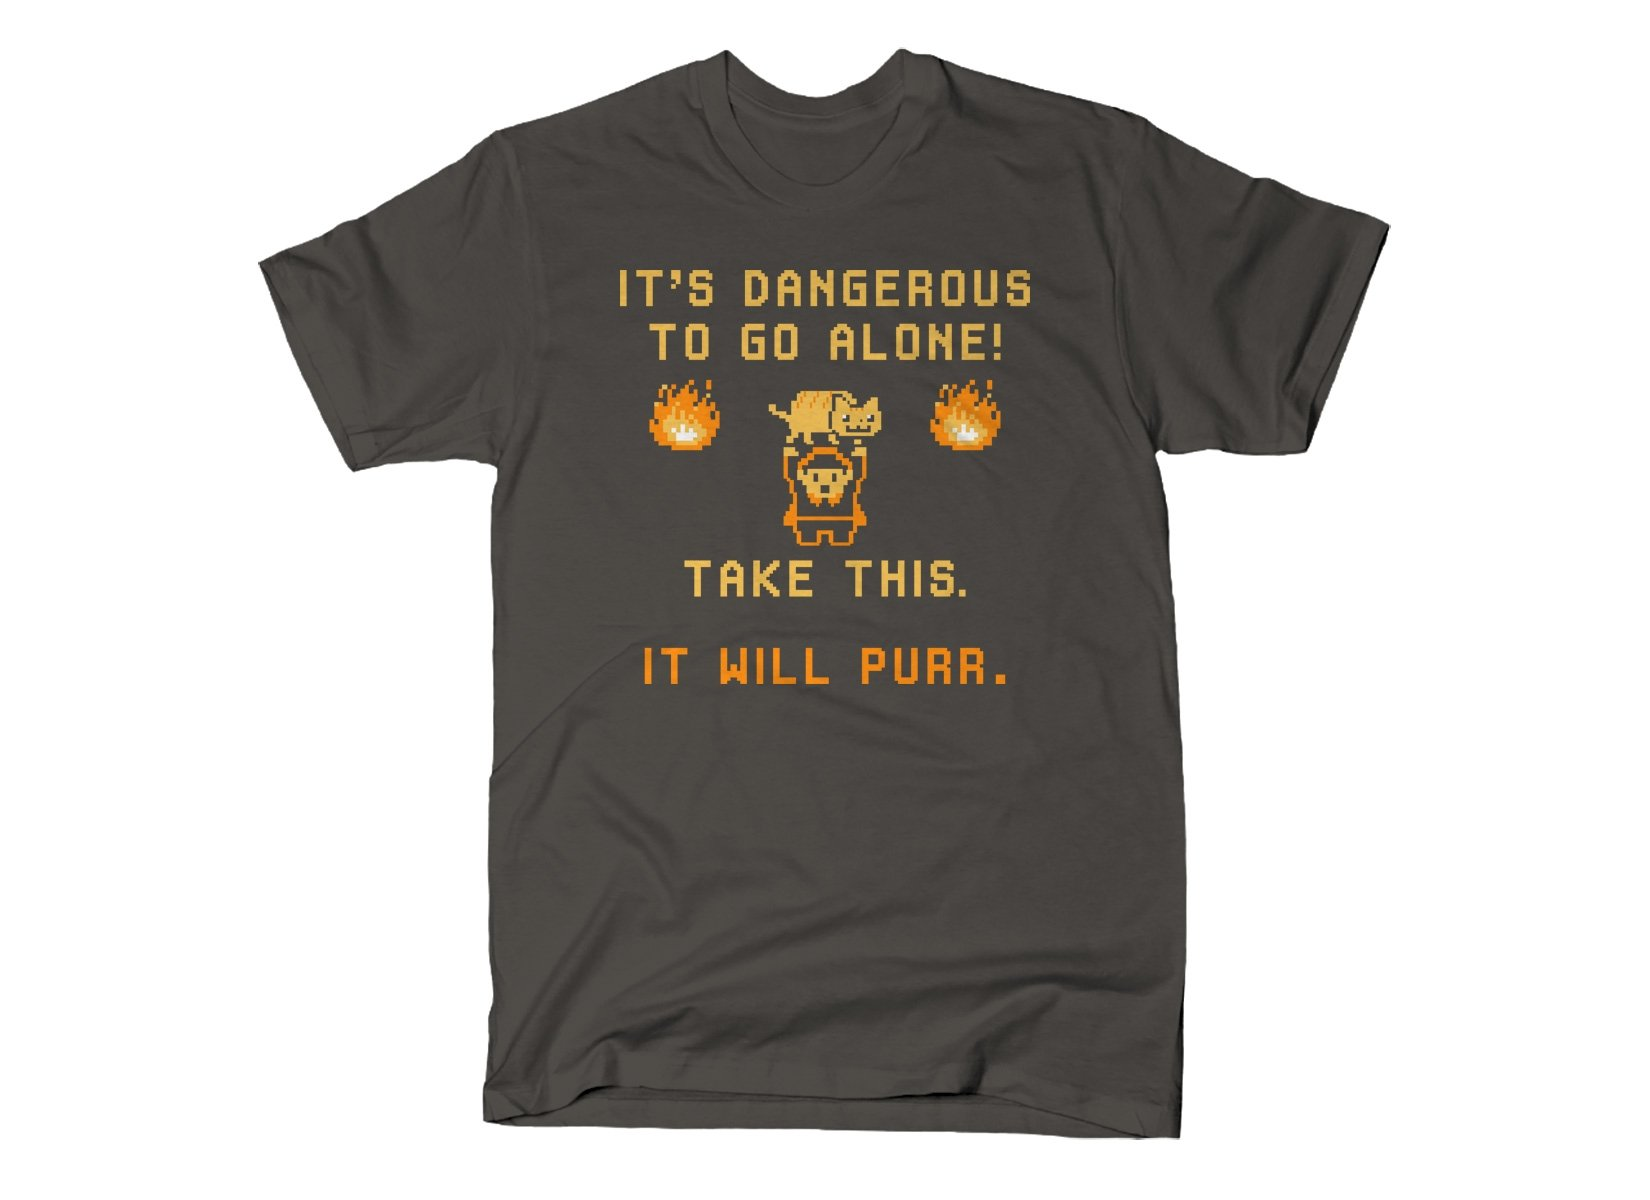 It's Dangerous To Go Alone on Mens T-Shirt